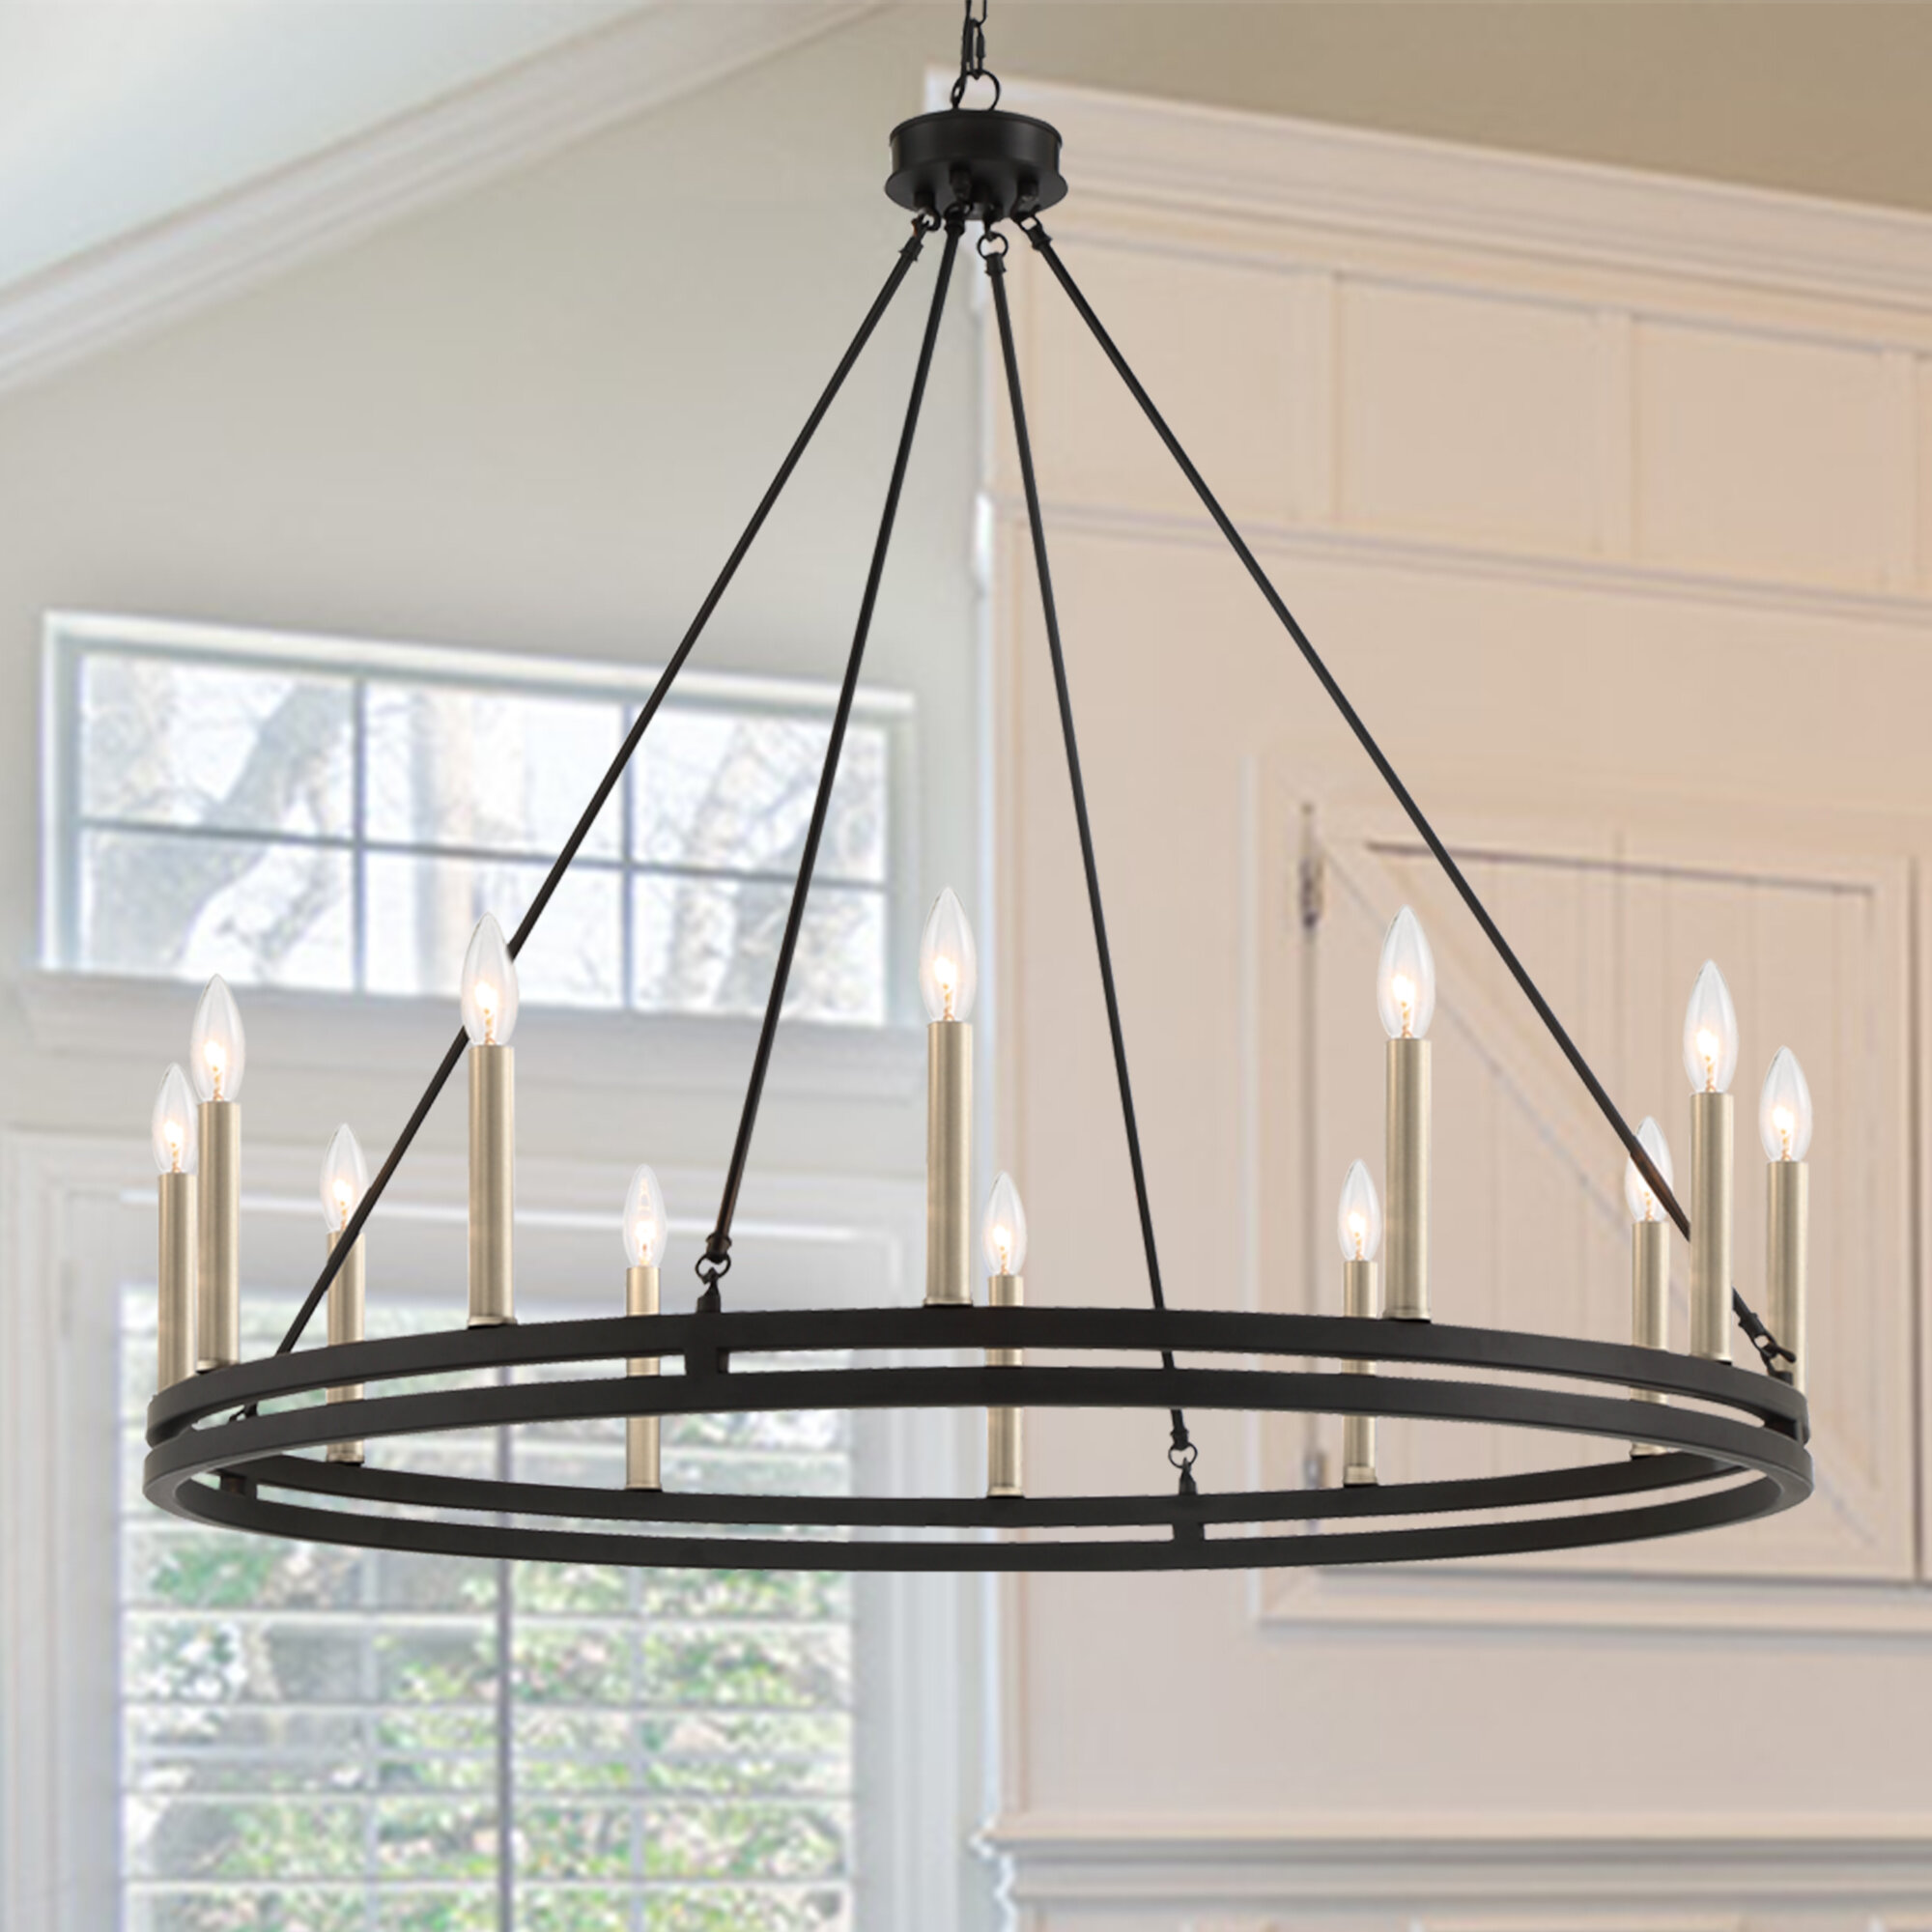 Black Finish Oversized Greater Than 35 Wide Chandeliers You Ll Love In 2021 Wayfair